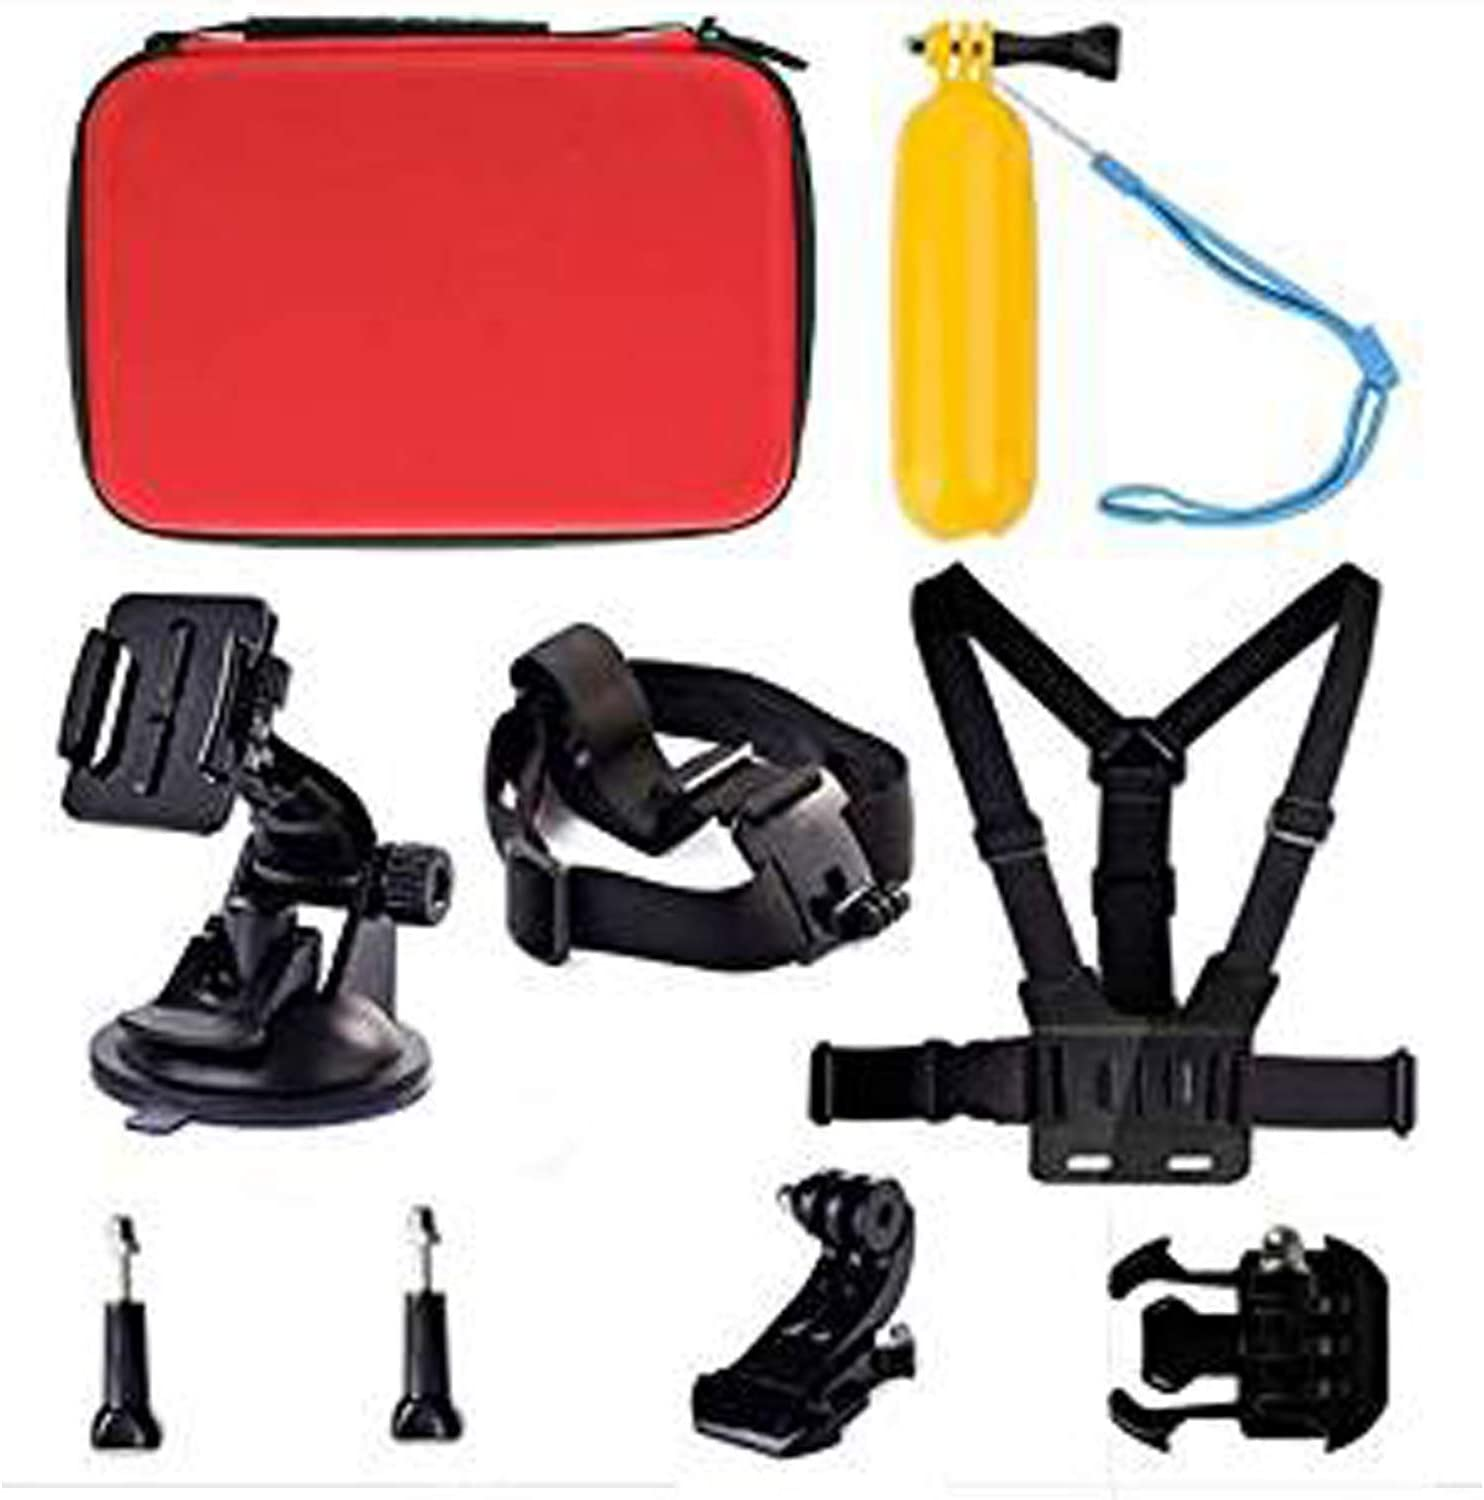 Navitech 9 in 1 Action Camera Accessory Combo Kit and Rugged Red Storage Case Compatible with The Noza Tec Pro 1080P SJ4000 HD Helmet Sport Action Waterproof Camera